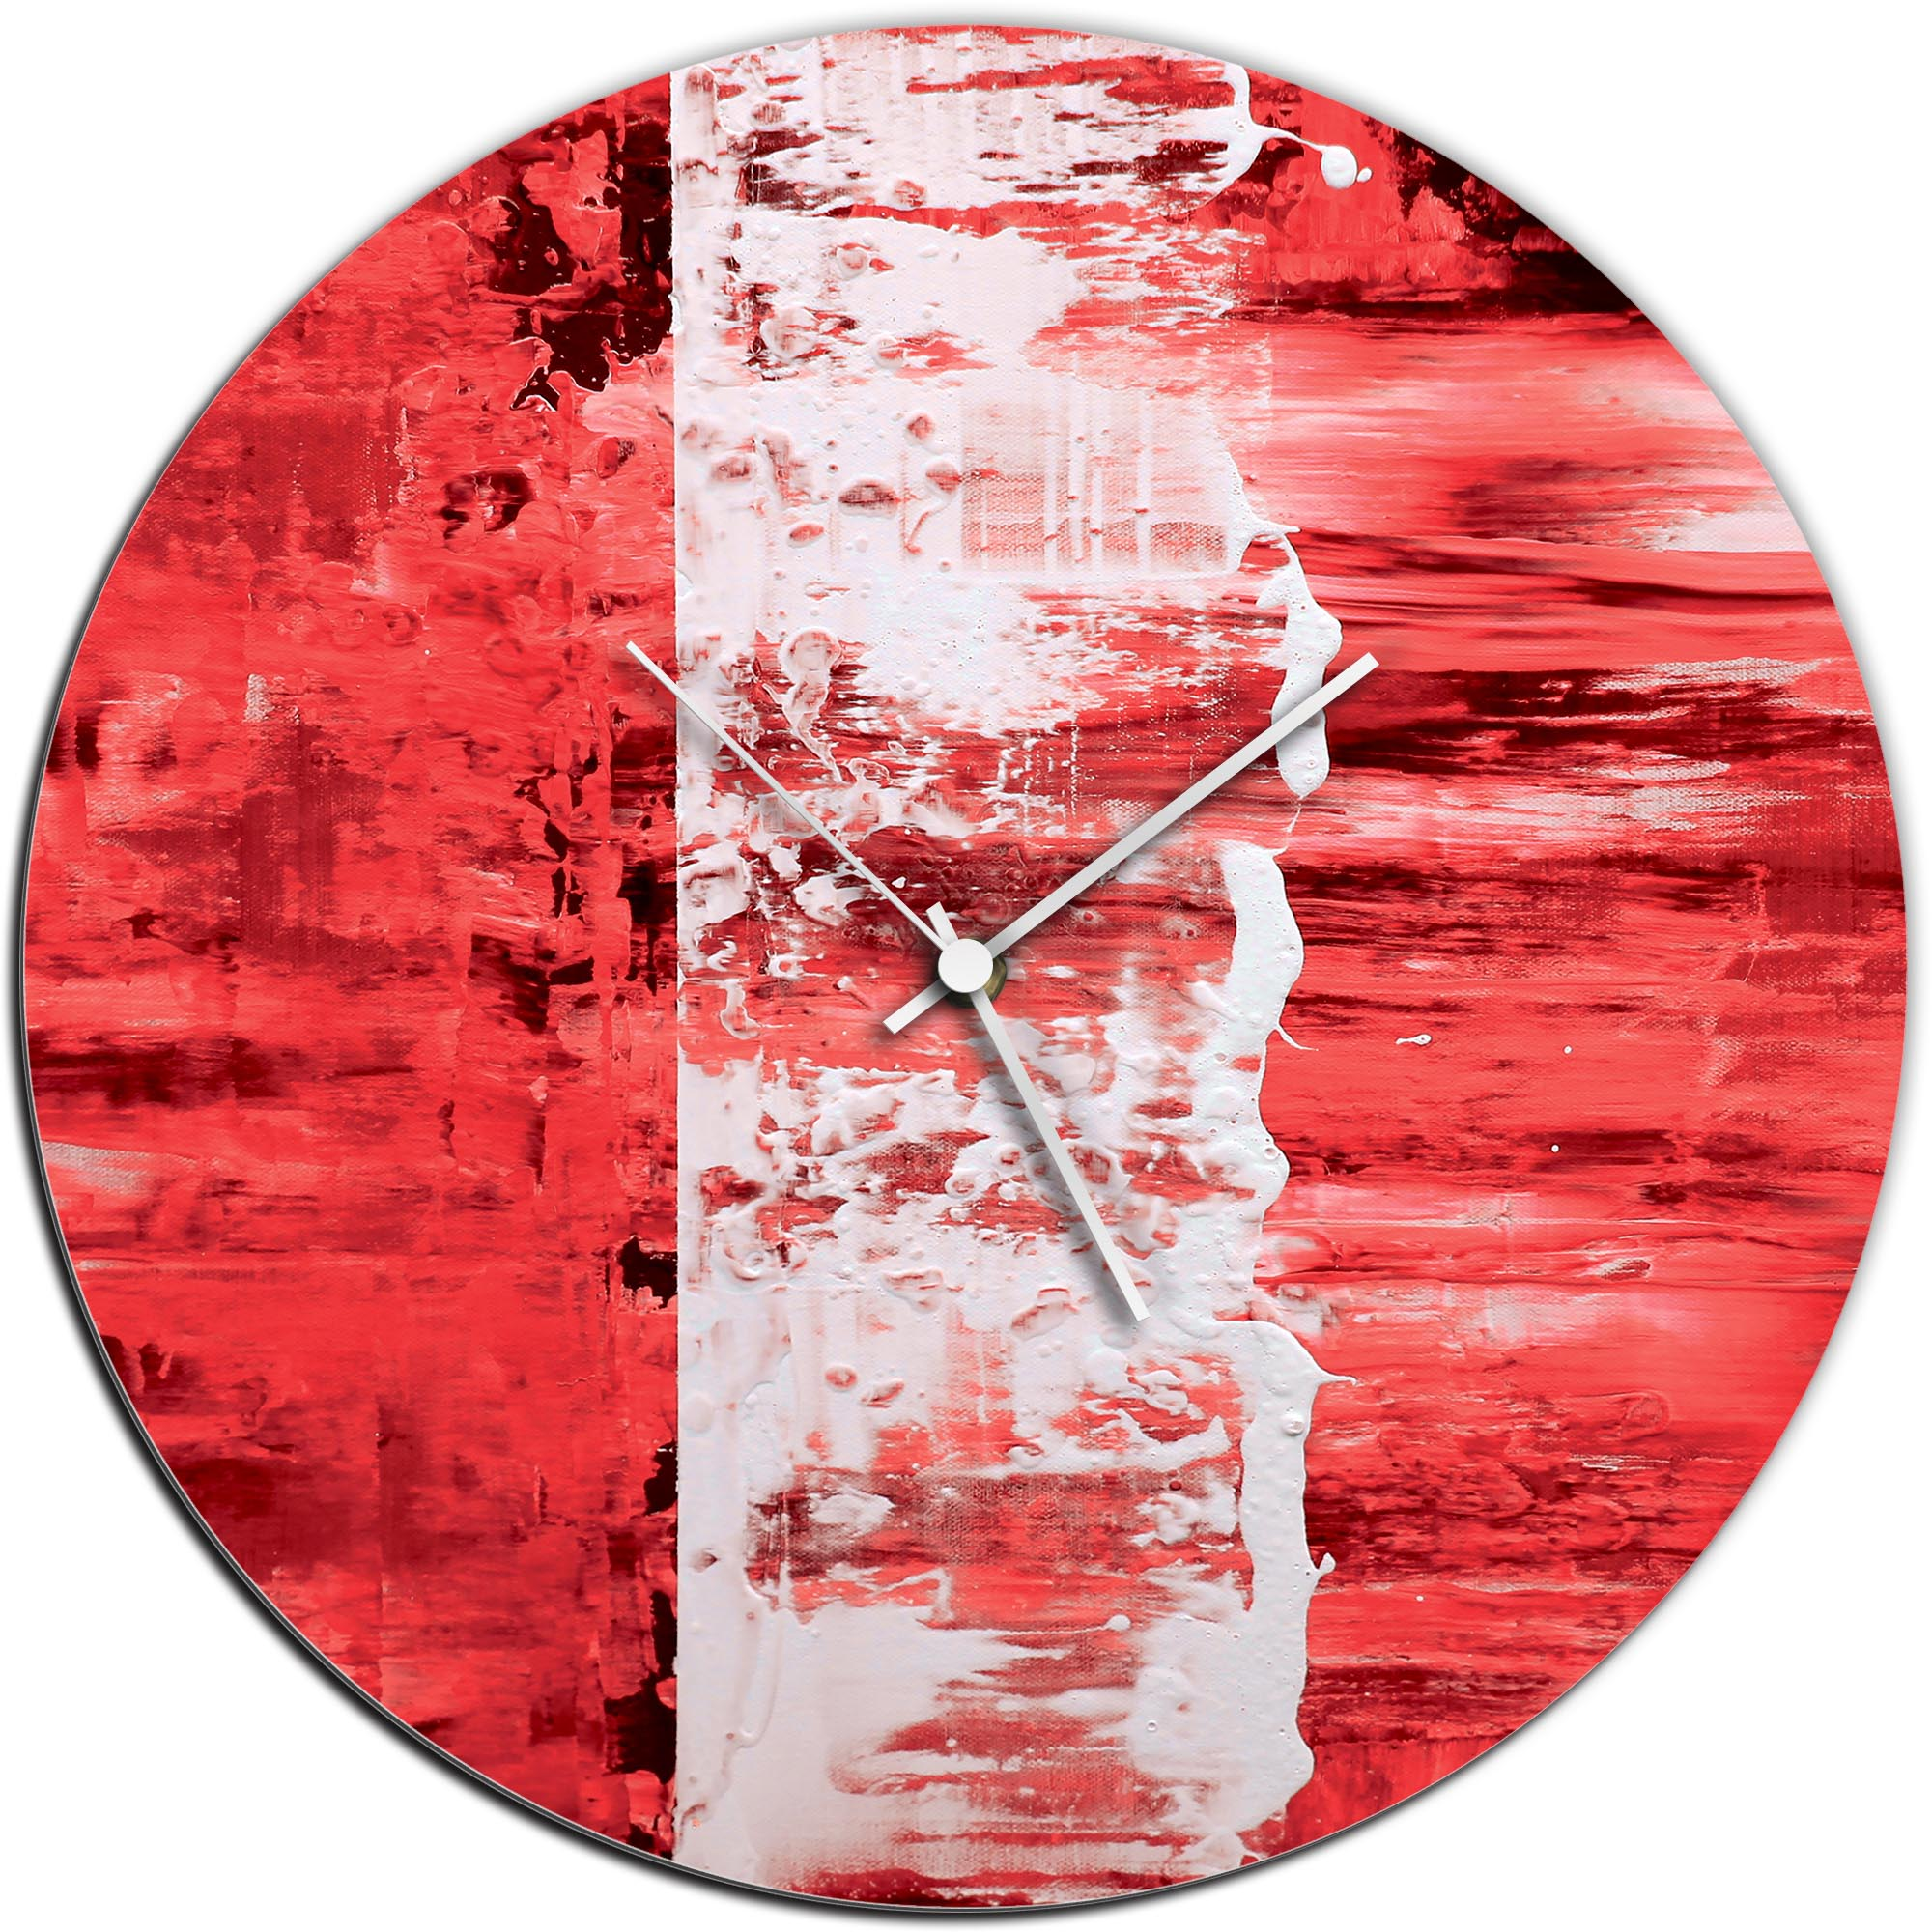 Mendo Vasilevski 'Red Street Circle Clock' 16in x 16in Modern Wall Clock on Aluminum Composite